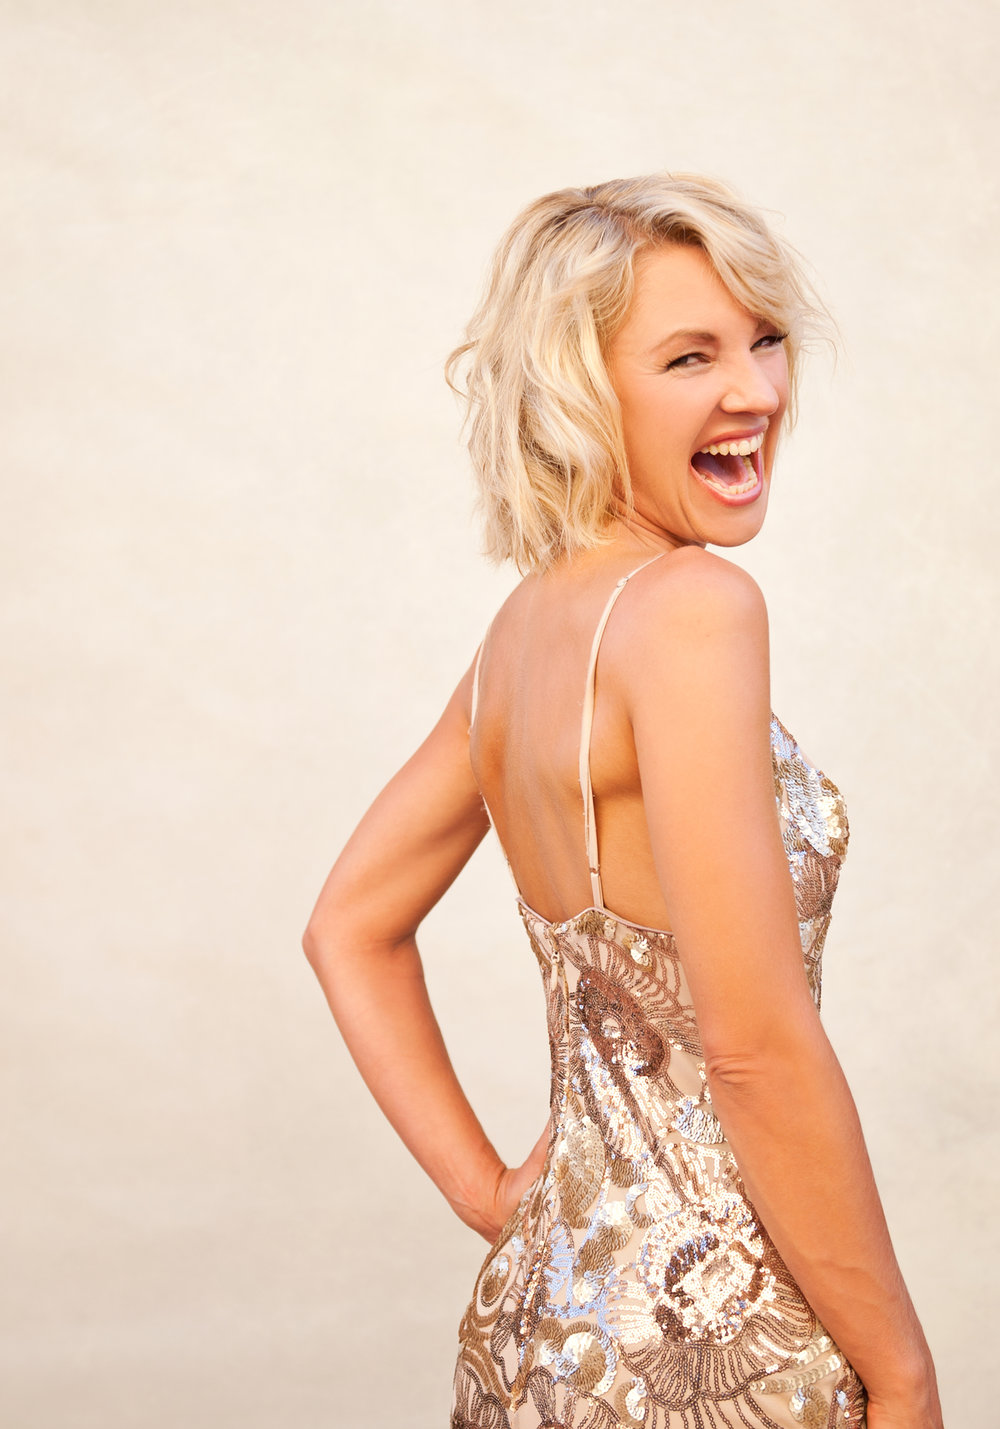 Blonde laughing girl with short hair in gold dress